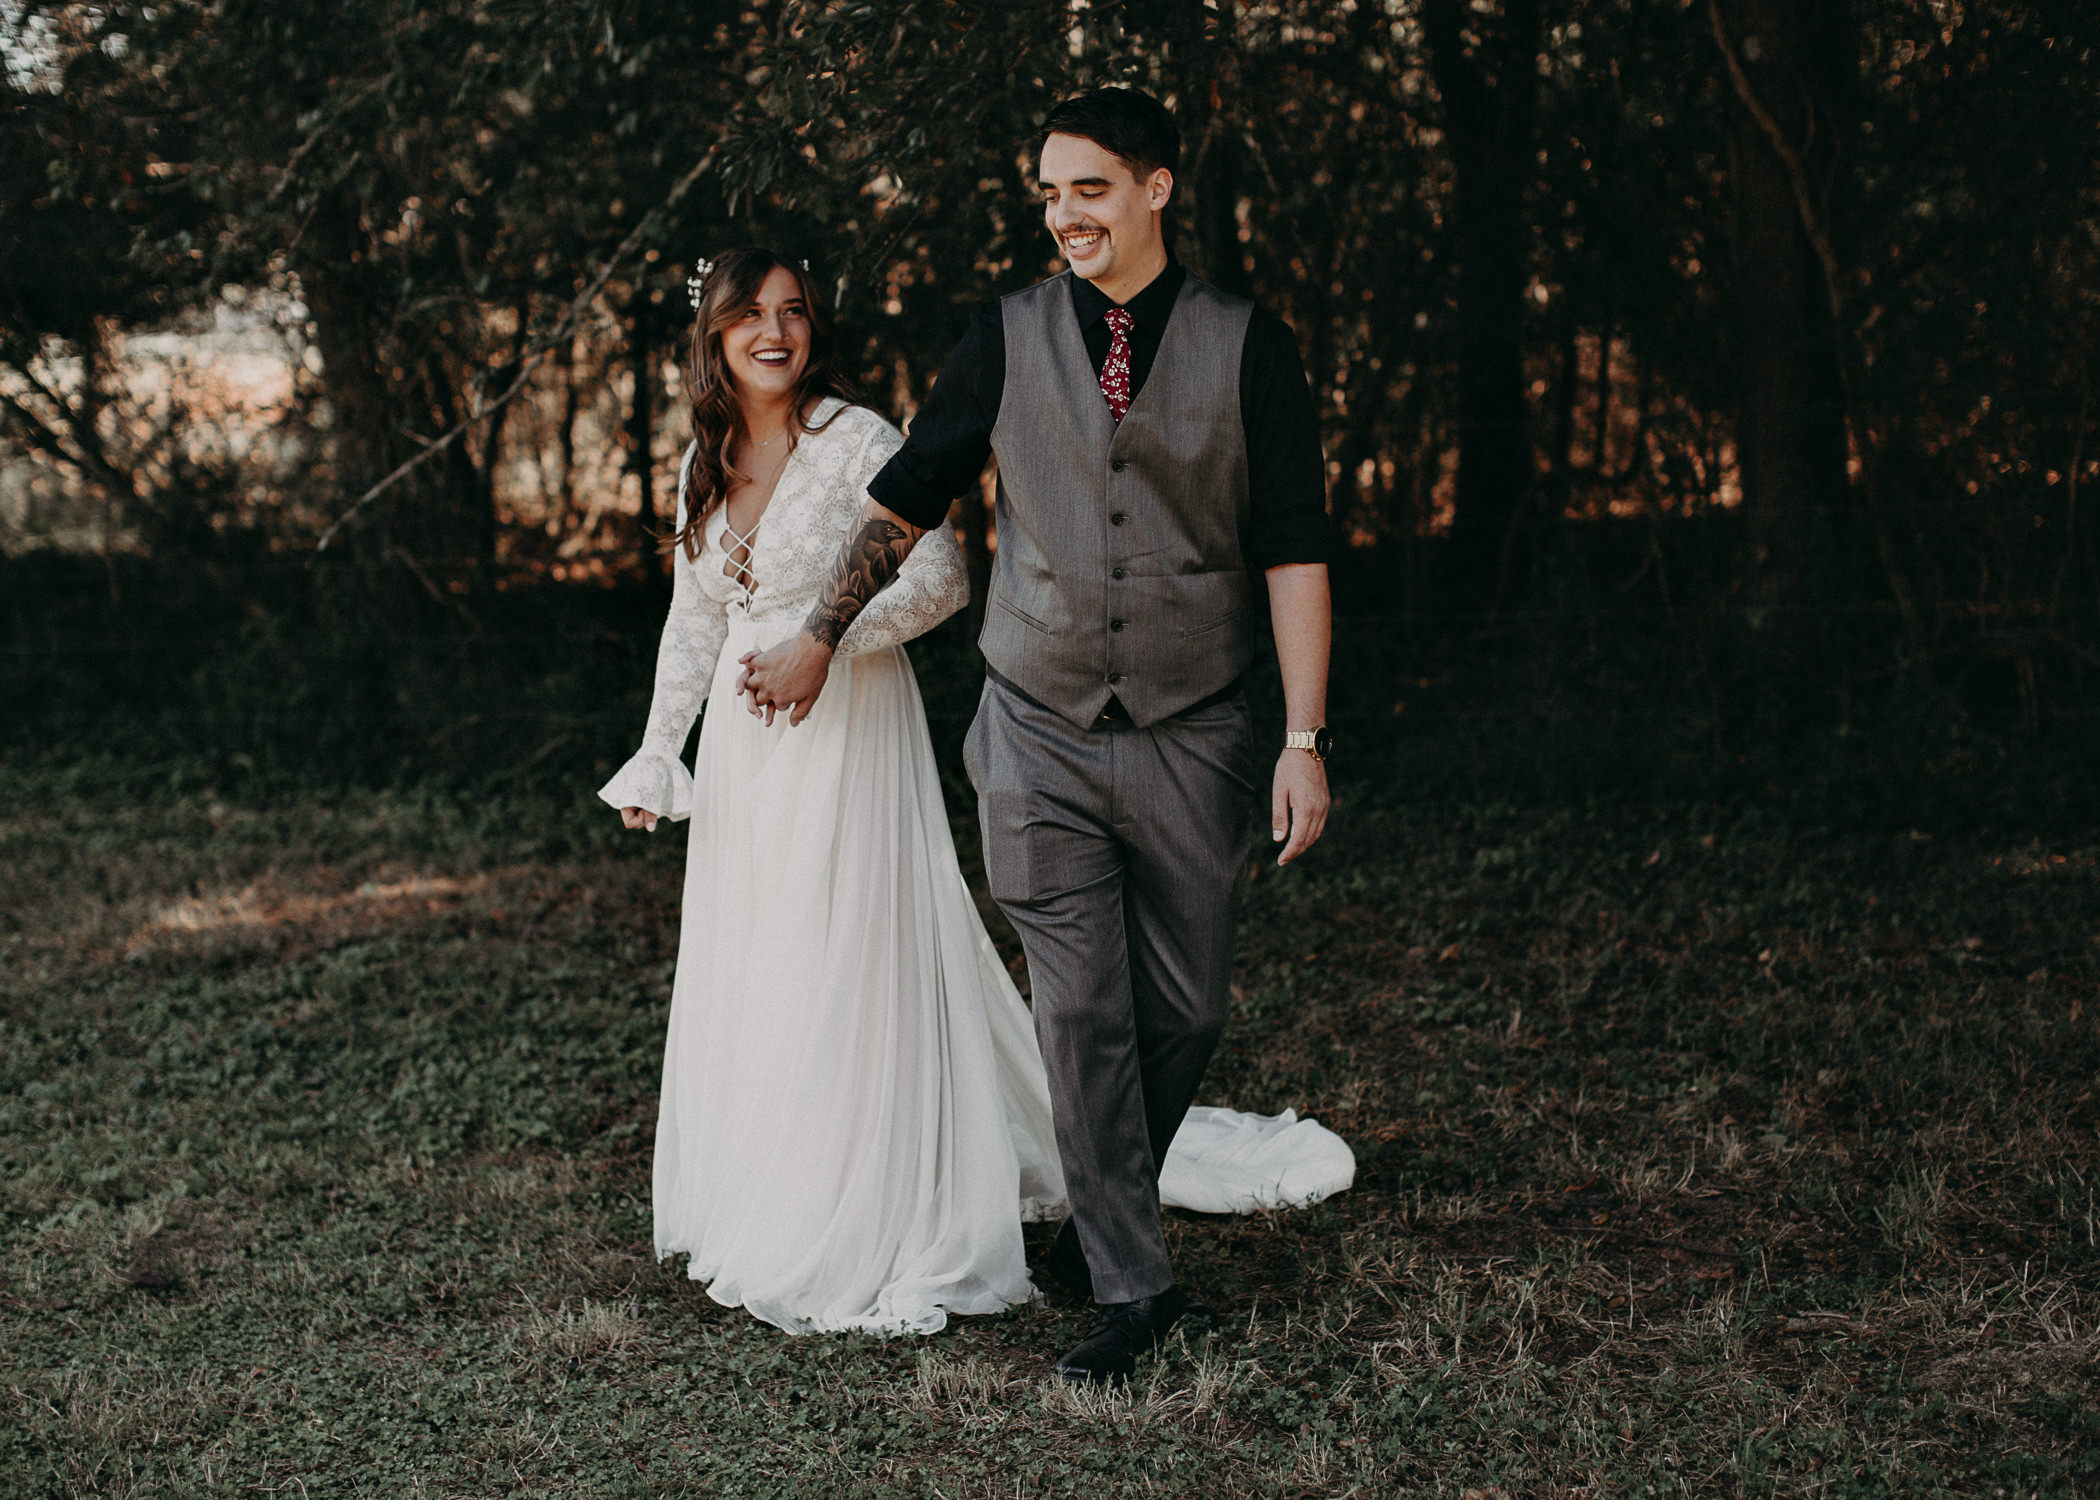 48 - Wedding first look : Atlanta wedding photographer .jpg